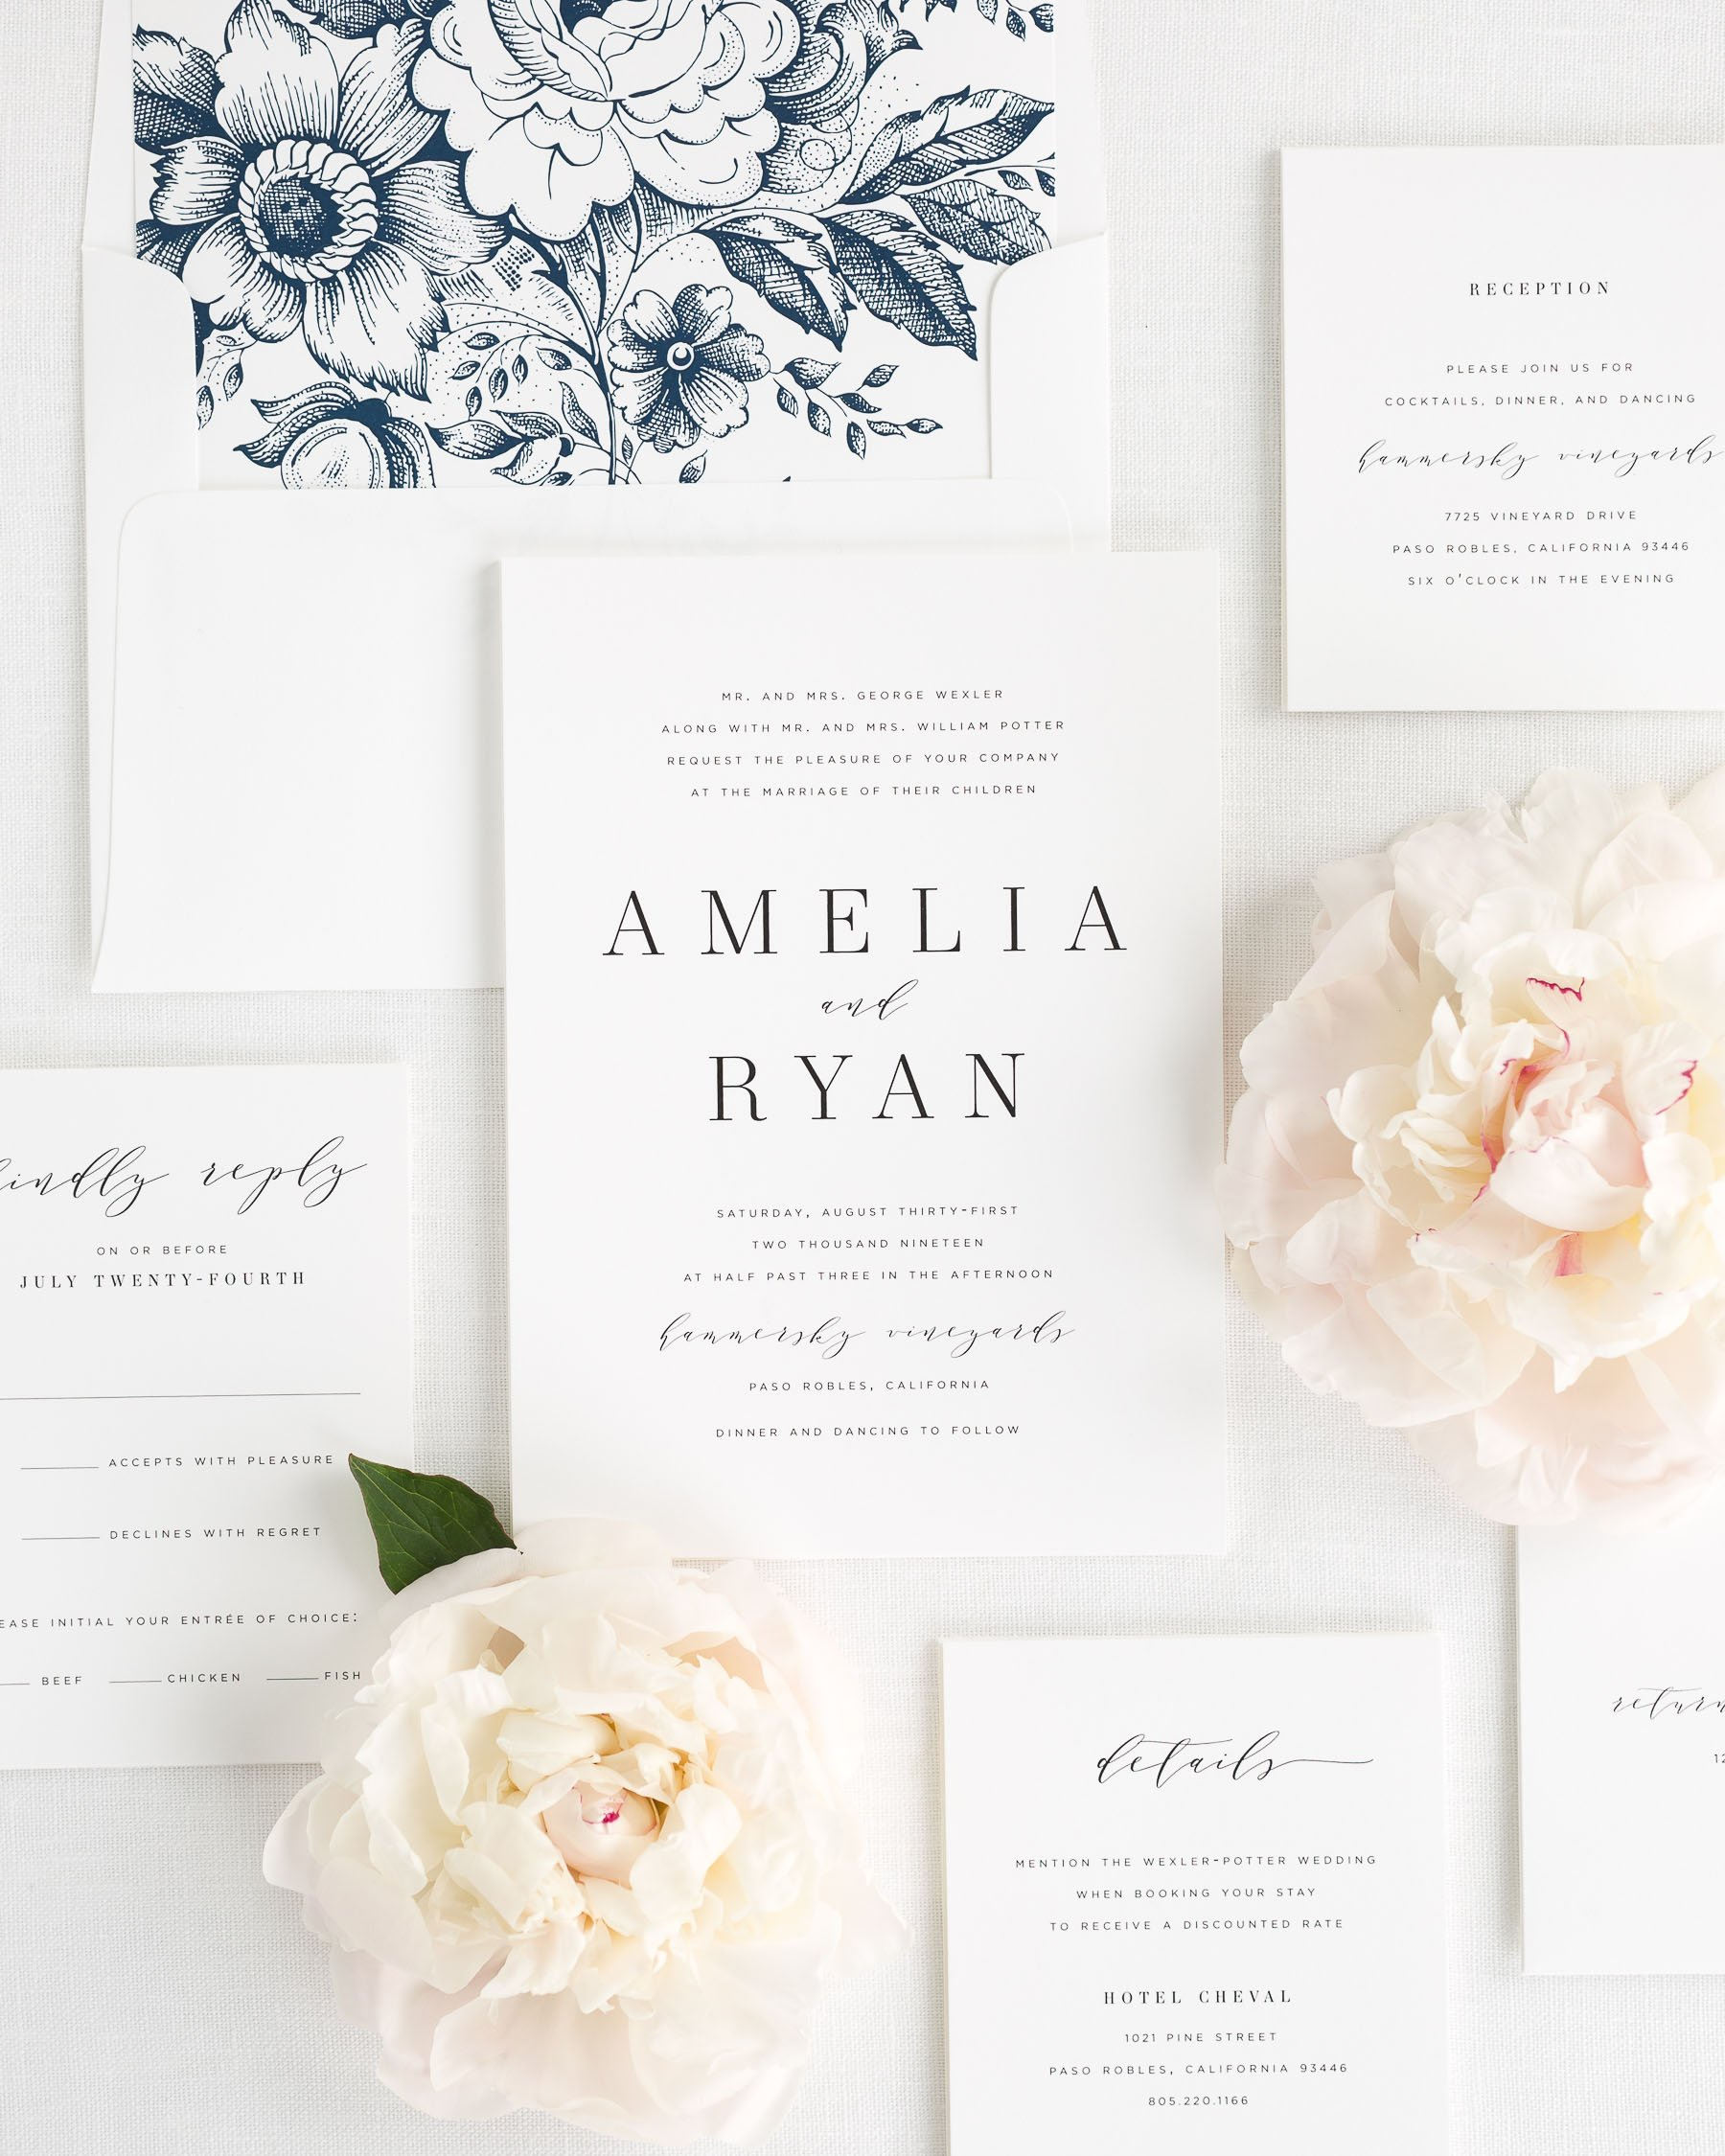 Amelia Wedding Invitations Wedding Invitations by Shine